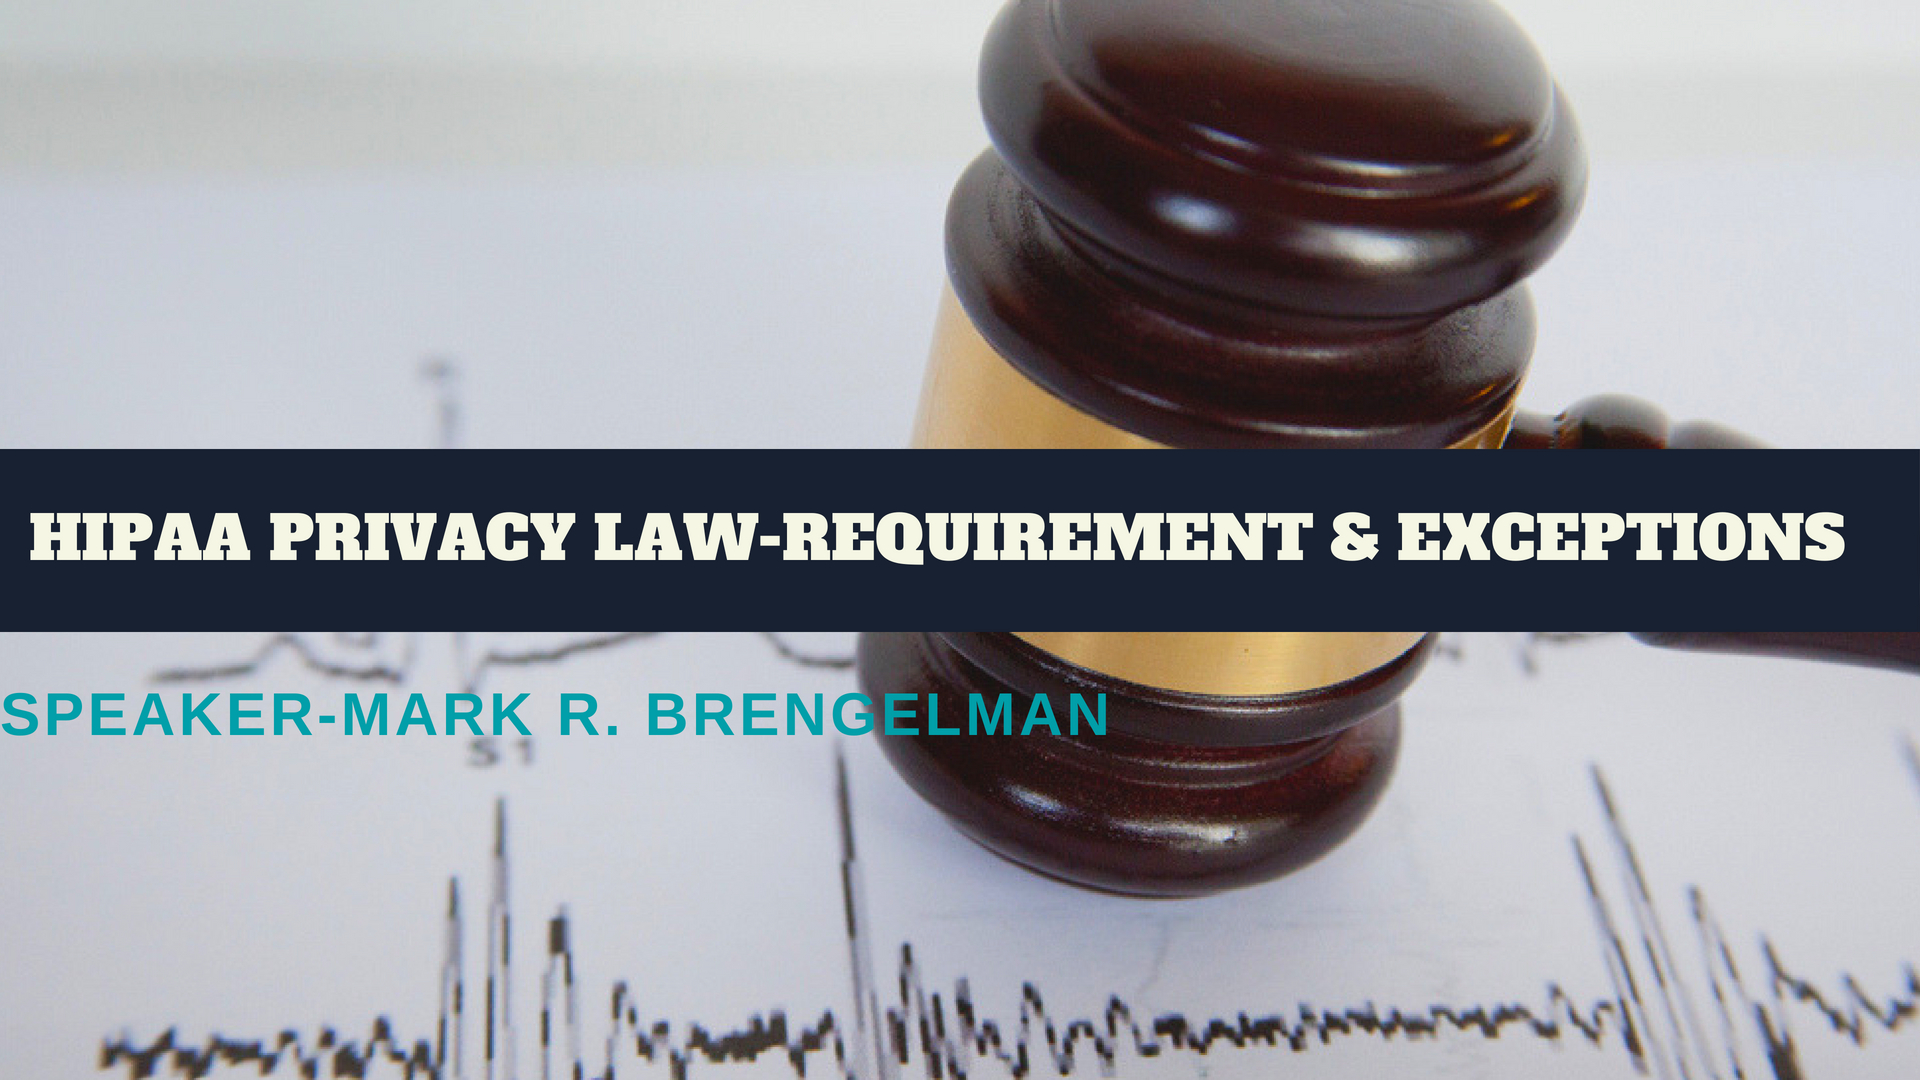 HIPAA Privacy Law- Requirement & Exceptions webinar